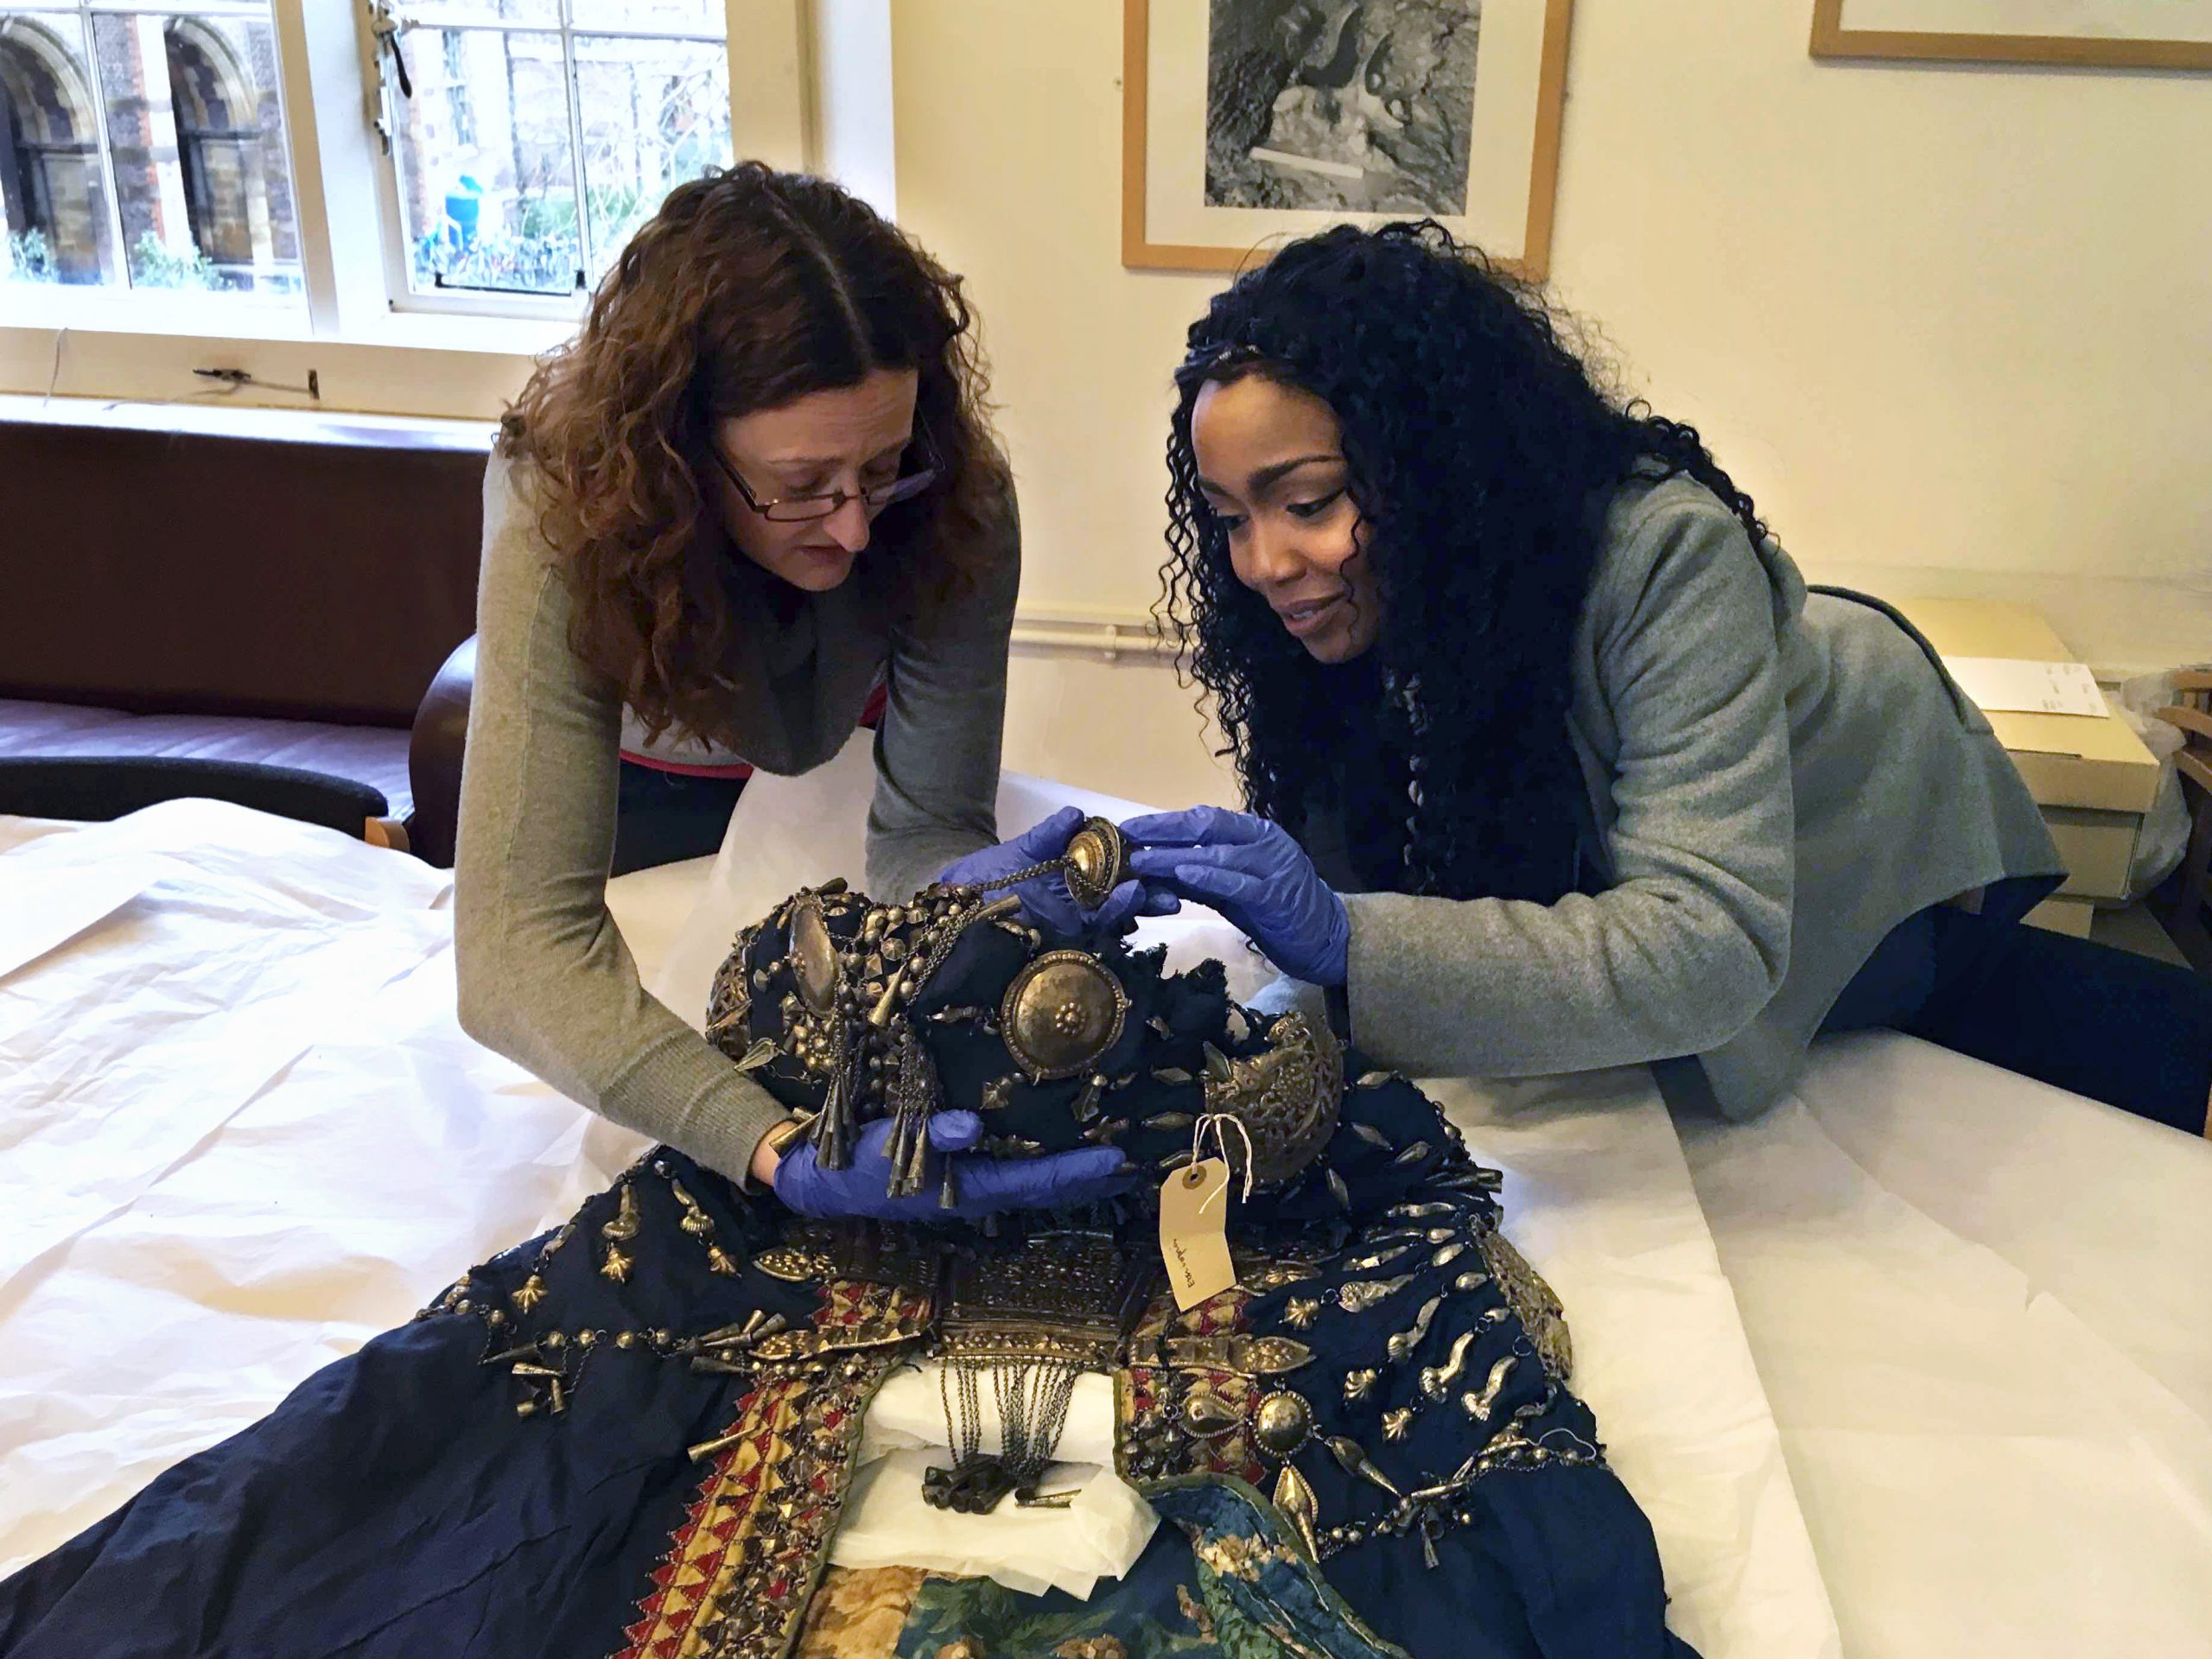 Researcher Vicky Ngari Wilson and Collections Manager for Anthropology Rachel Hand examining the robe of Abyssinian Queen Woyzaro Terunesh